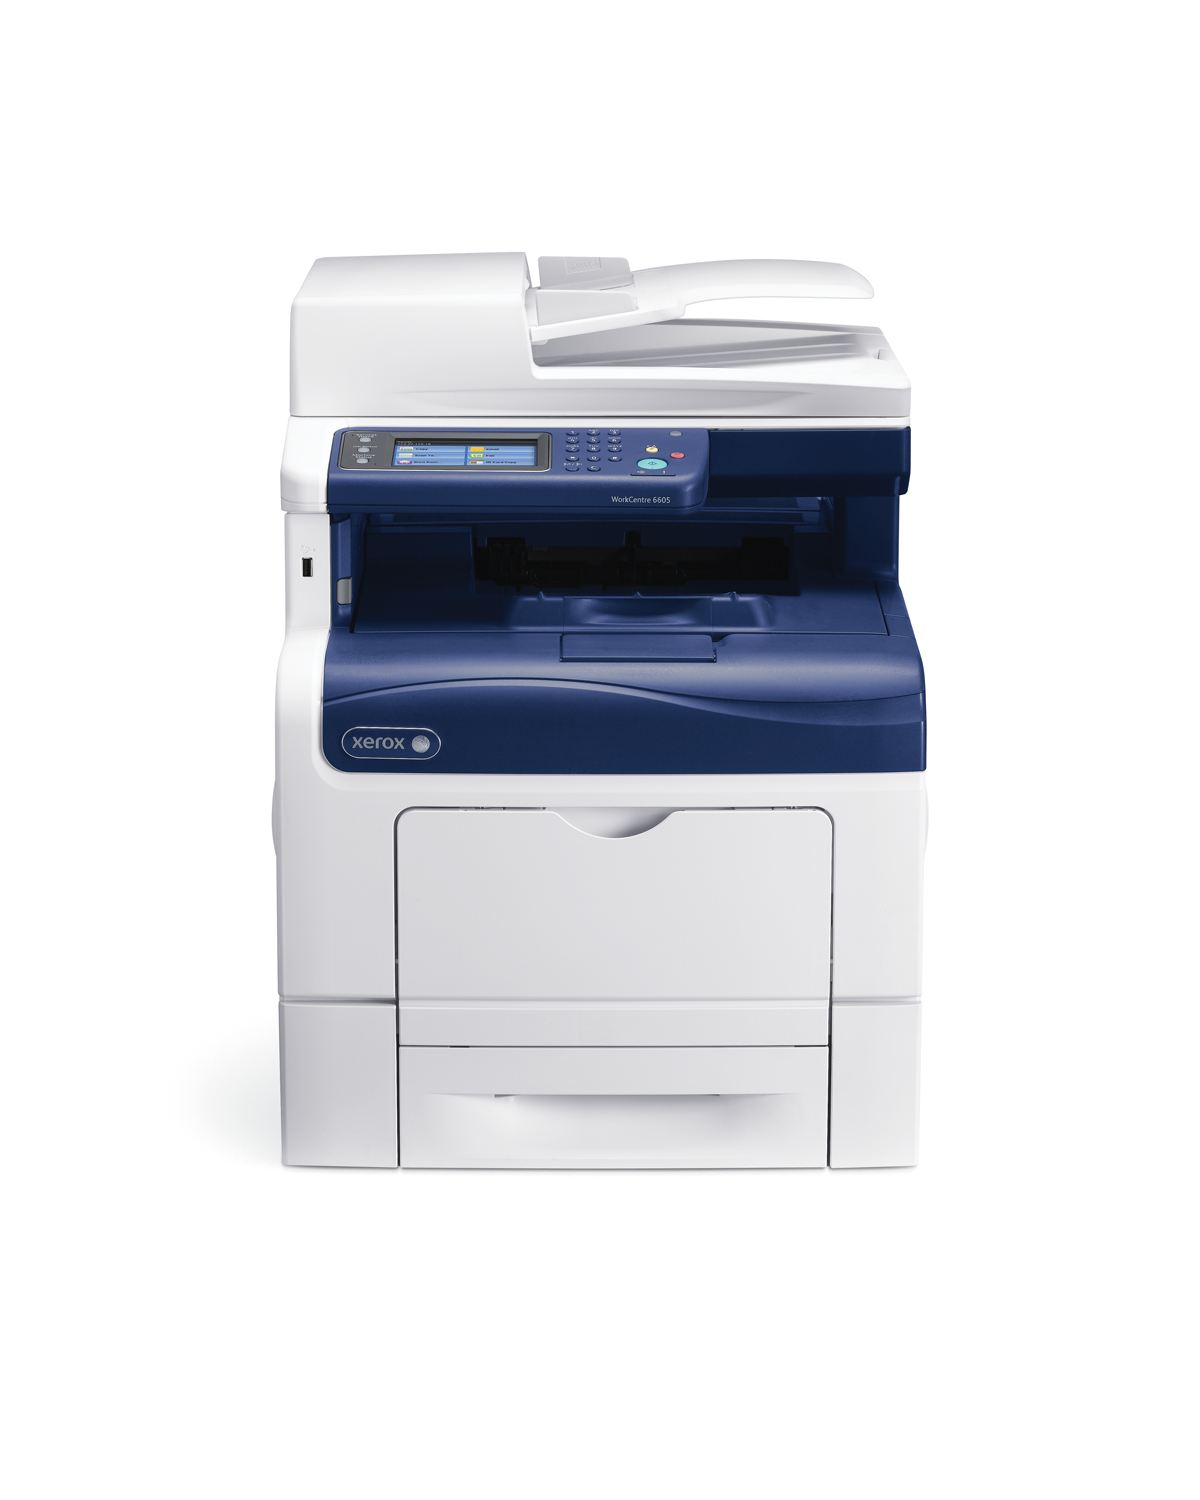 Xerox Workcentre 6605 6605v Dn